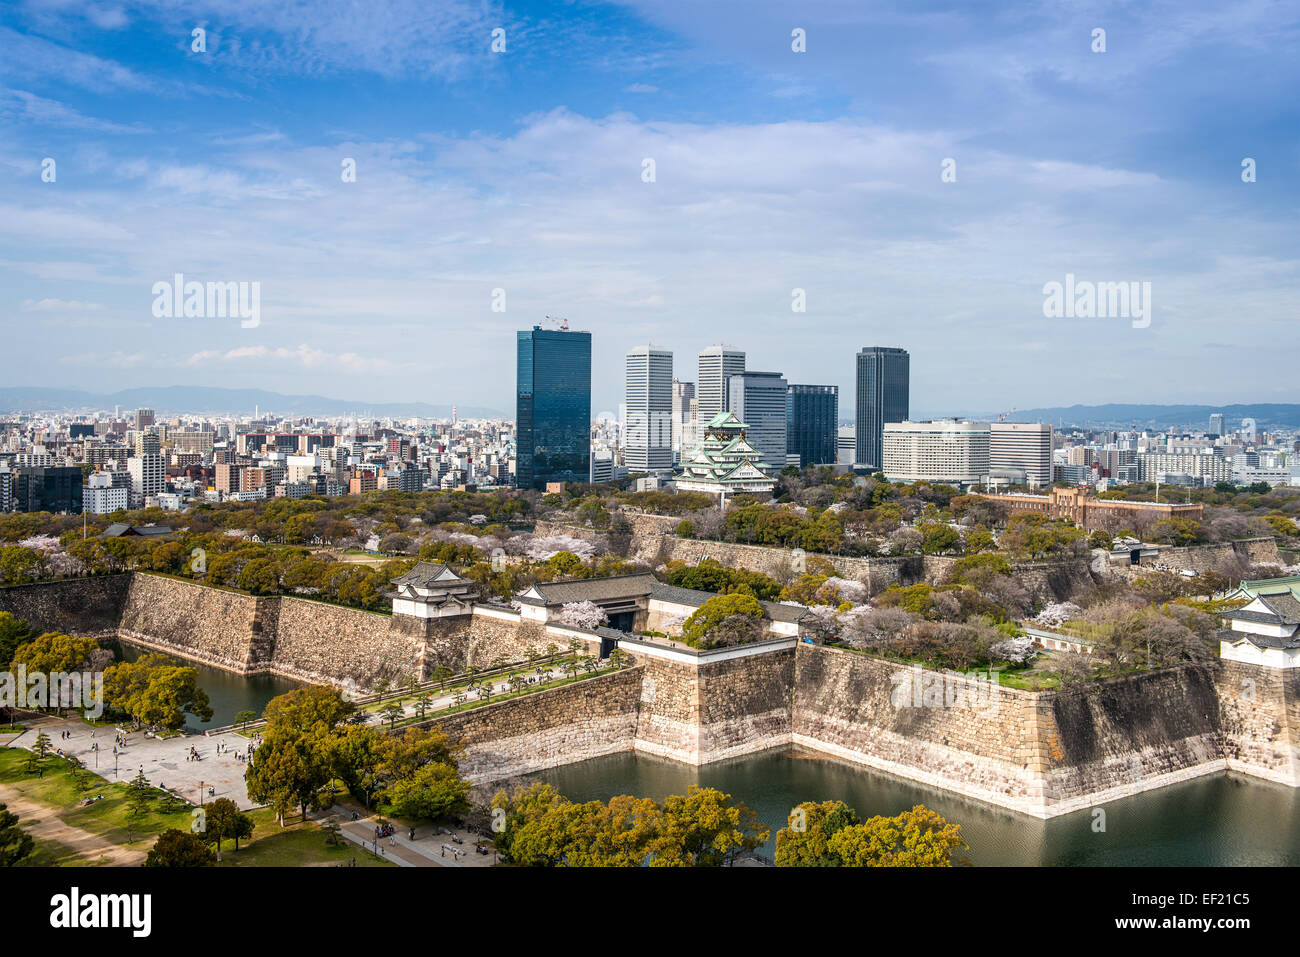 Osaka, Japan city skyline at the castle and business park. - Stock Image